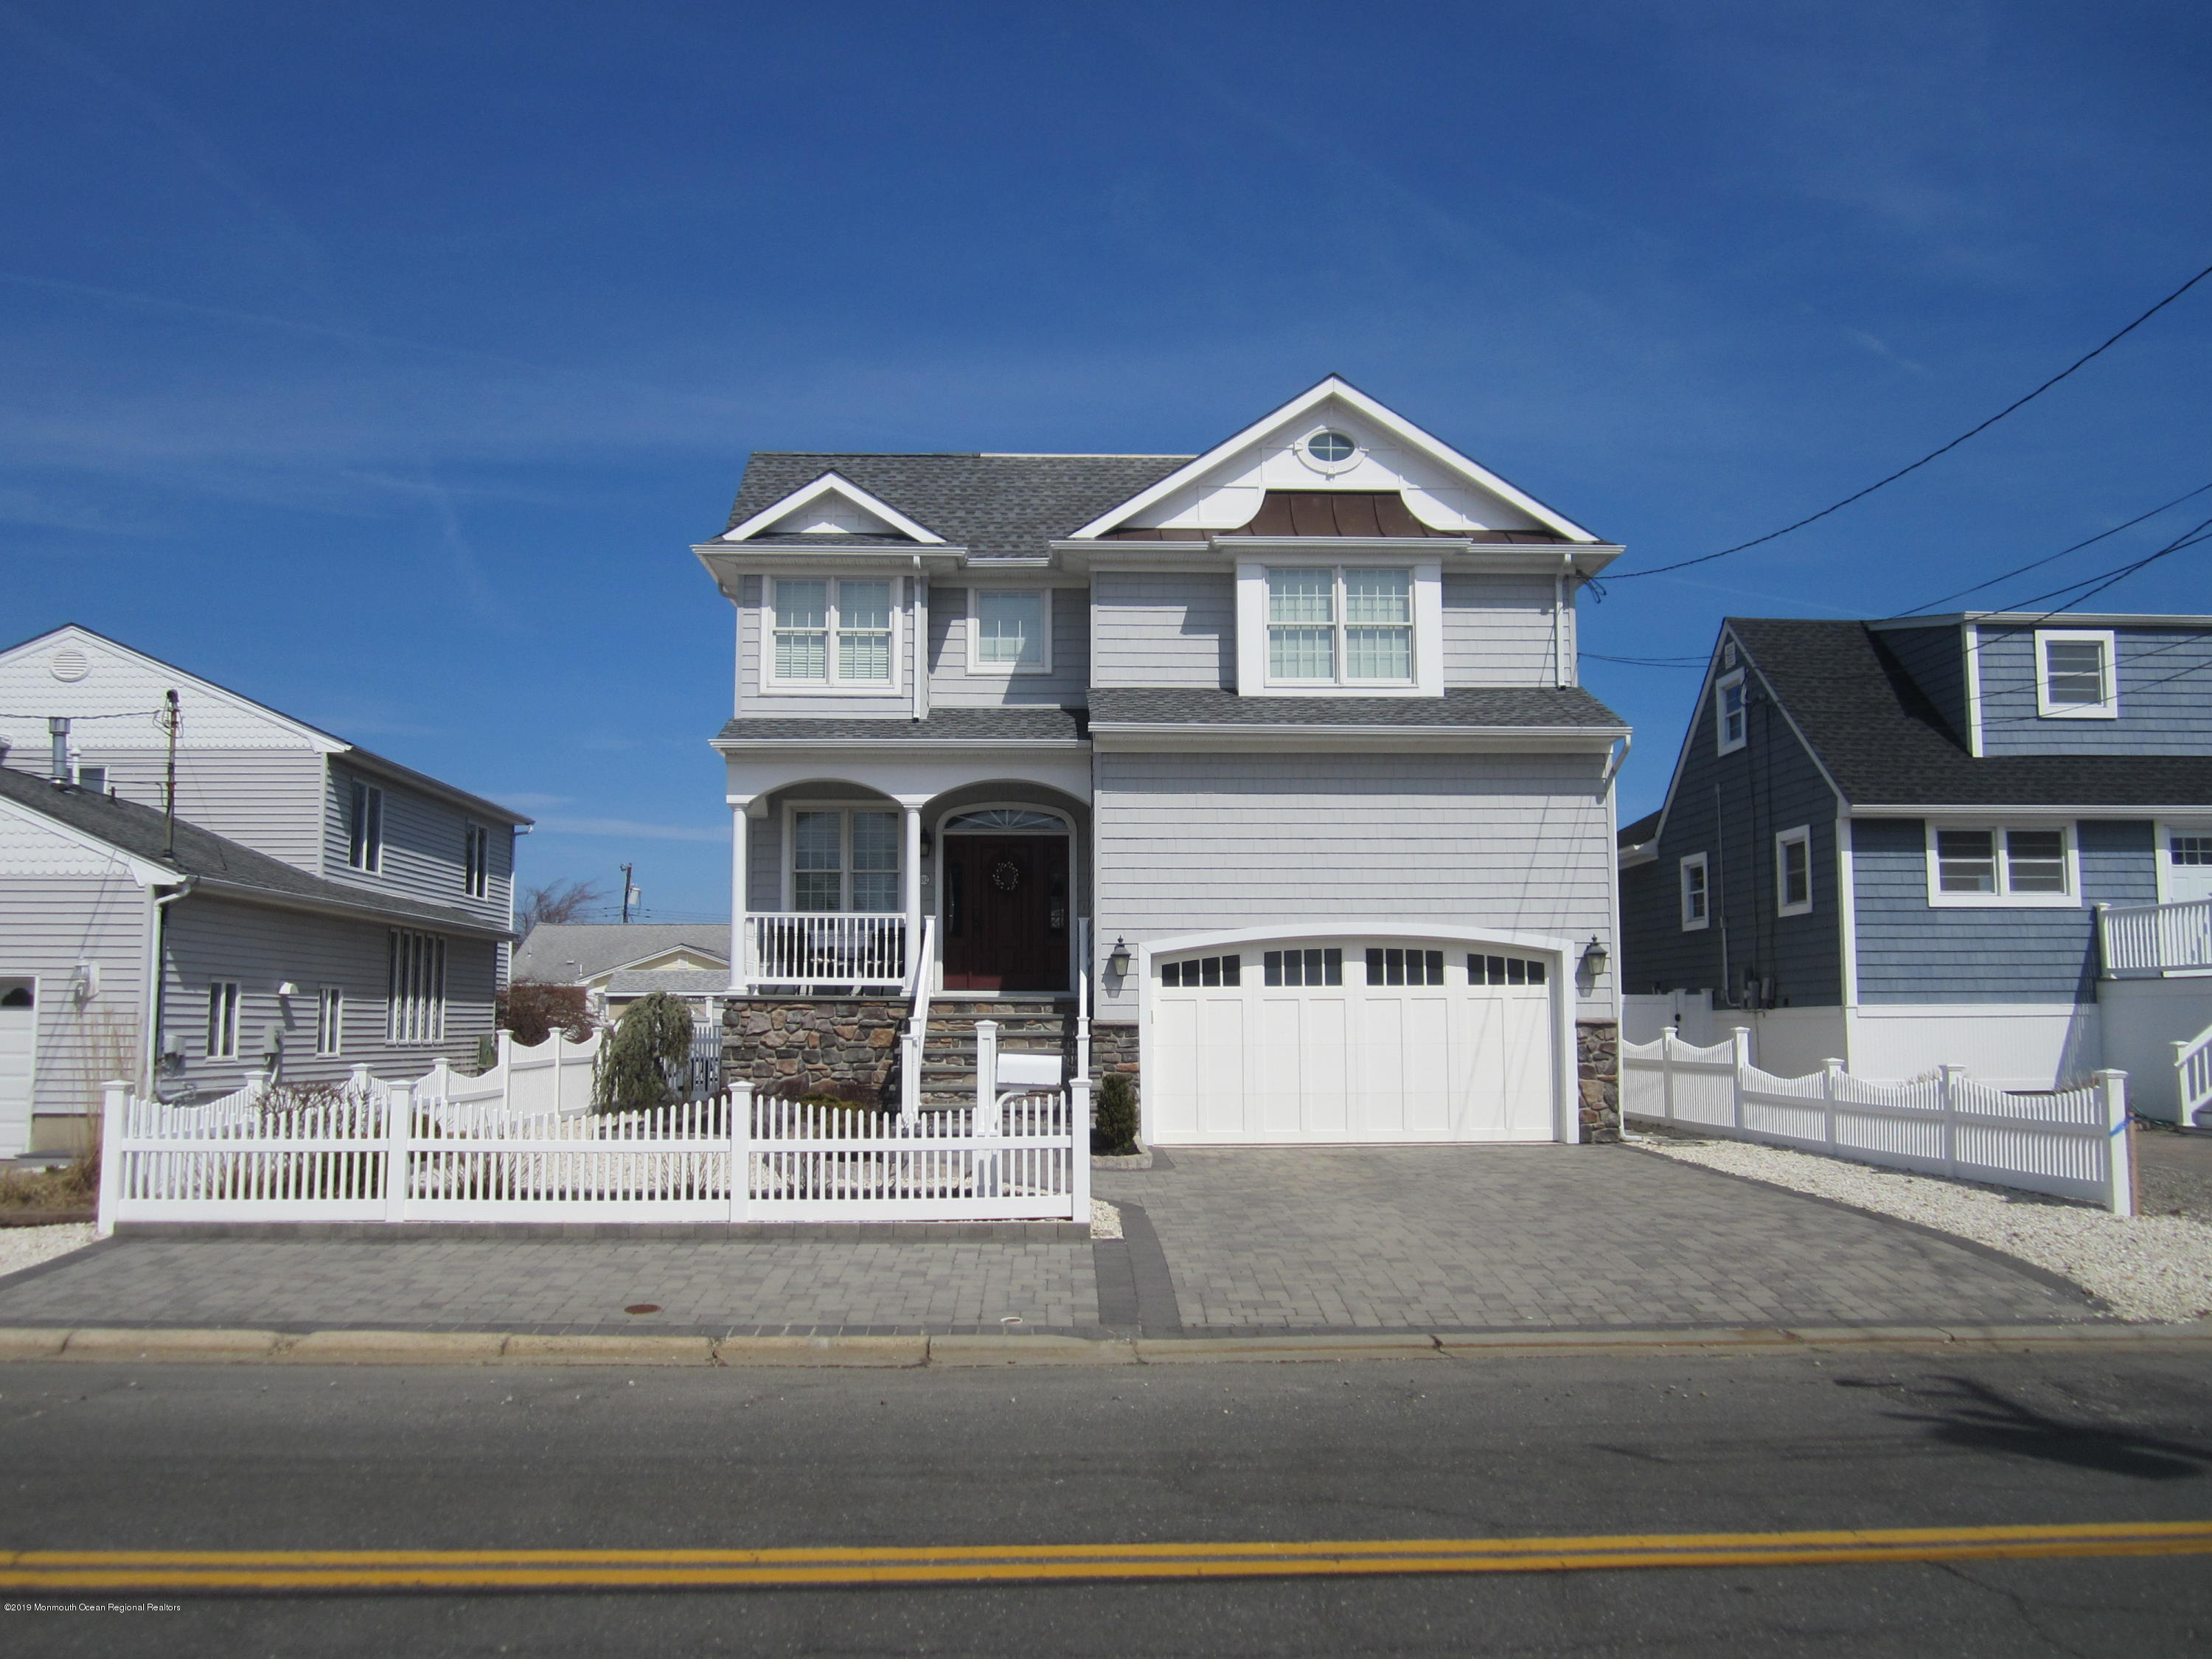 Photo of 192 Pershing Boulevard, Lavallette, NJ 08735